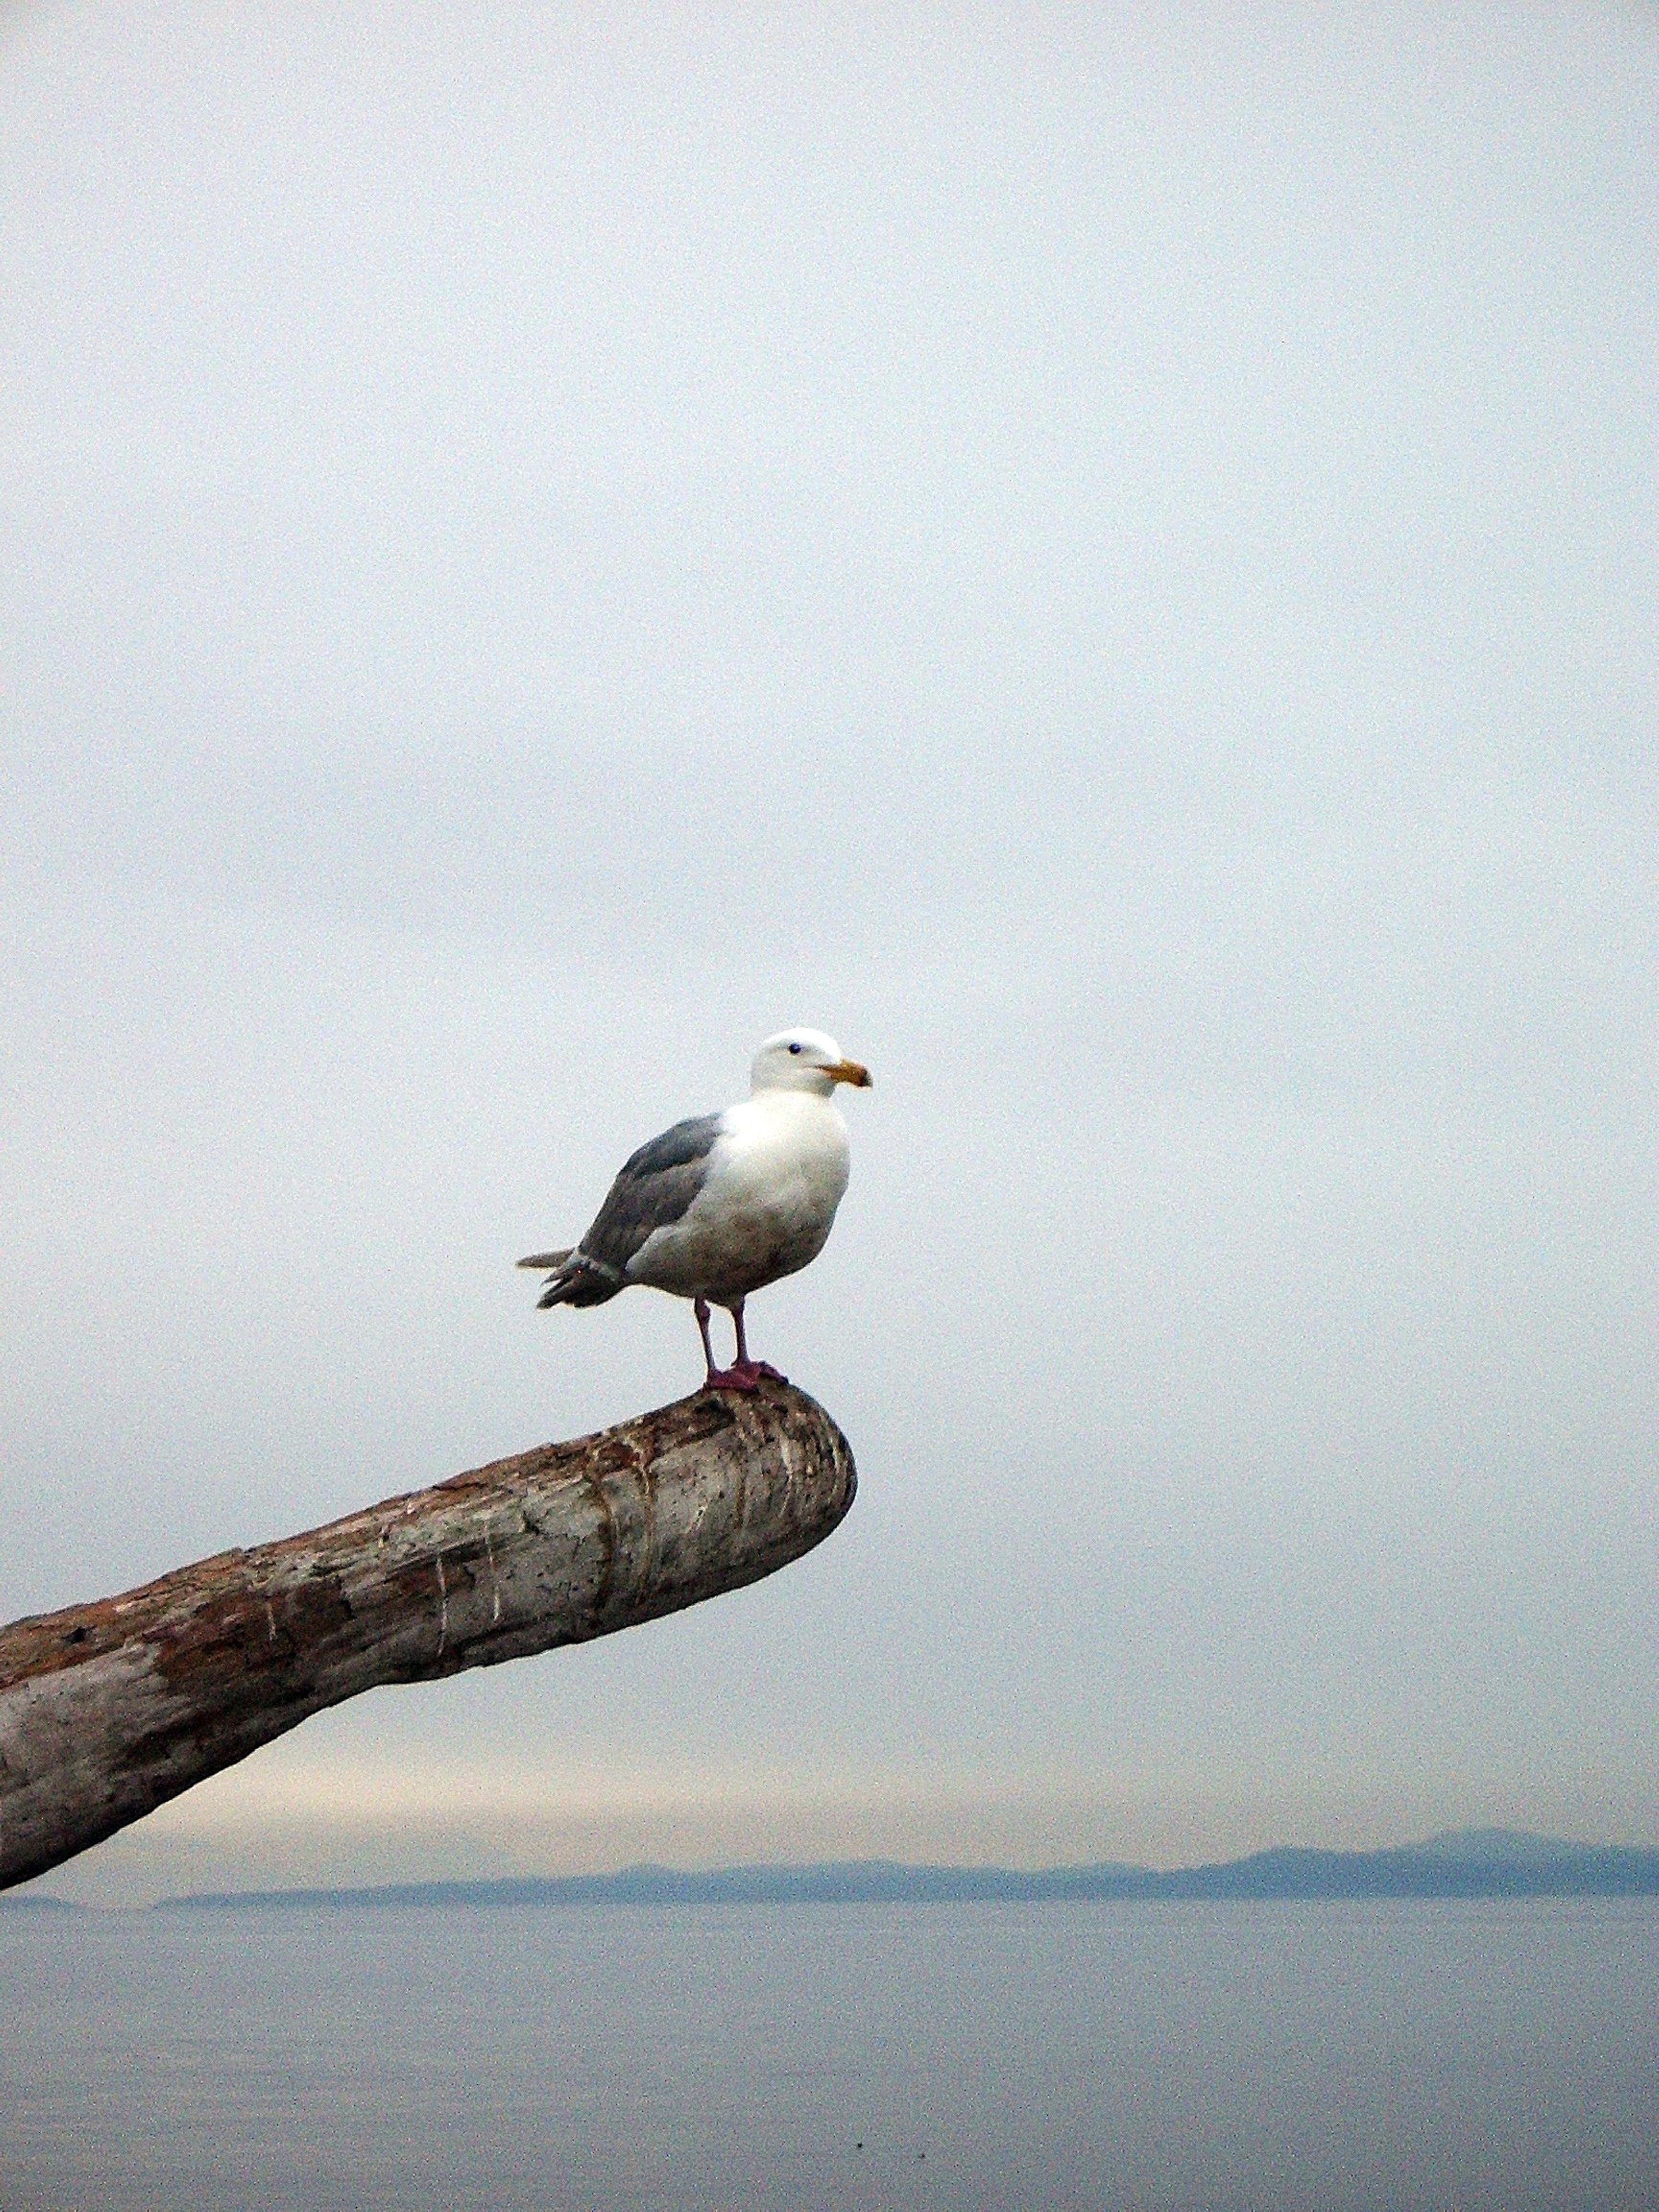 50565 download wallpaper Animals, Gull, Seagull, Bird, Beam, Horizon screensavers and pictures for free